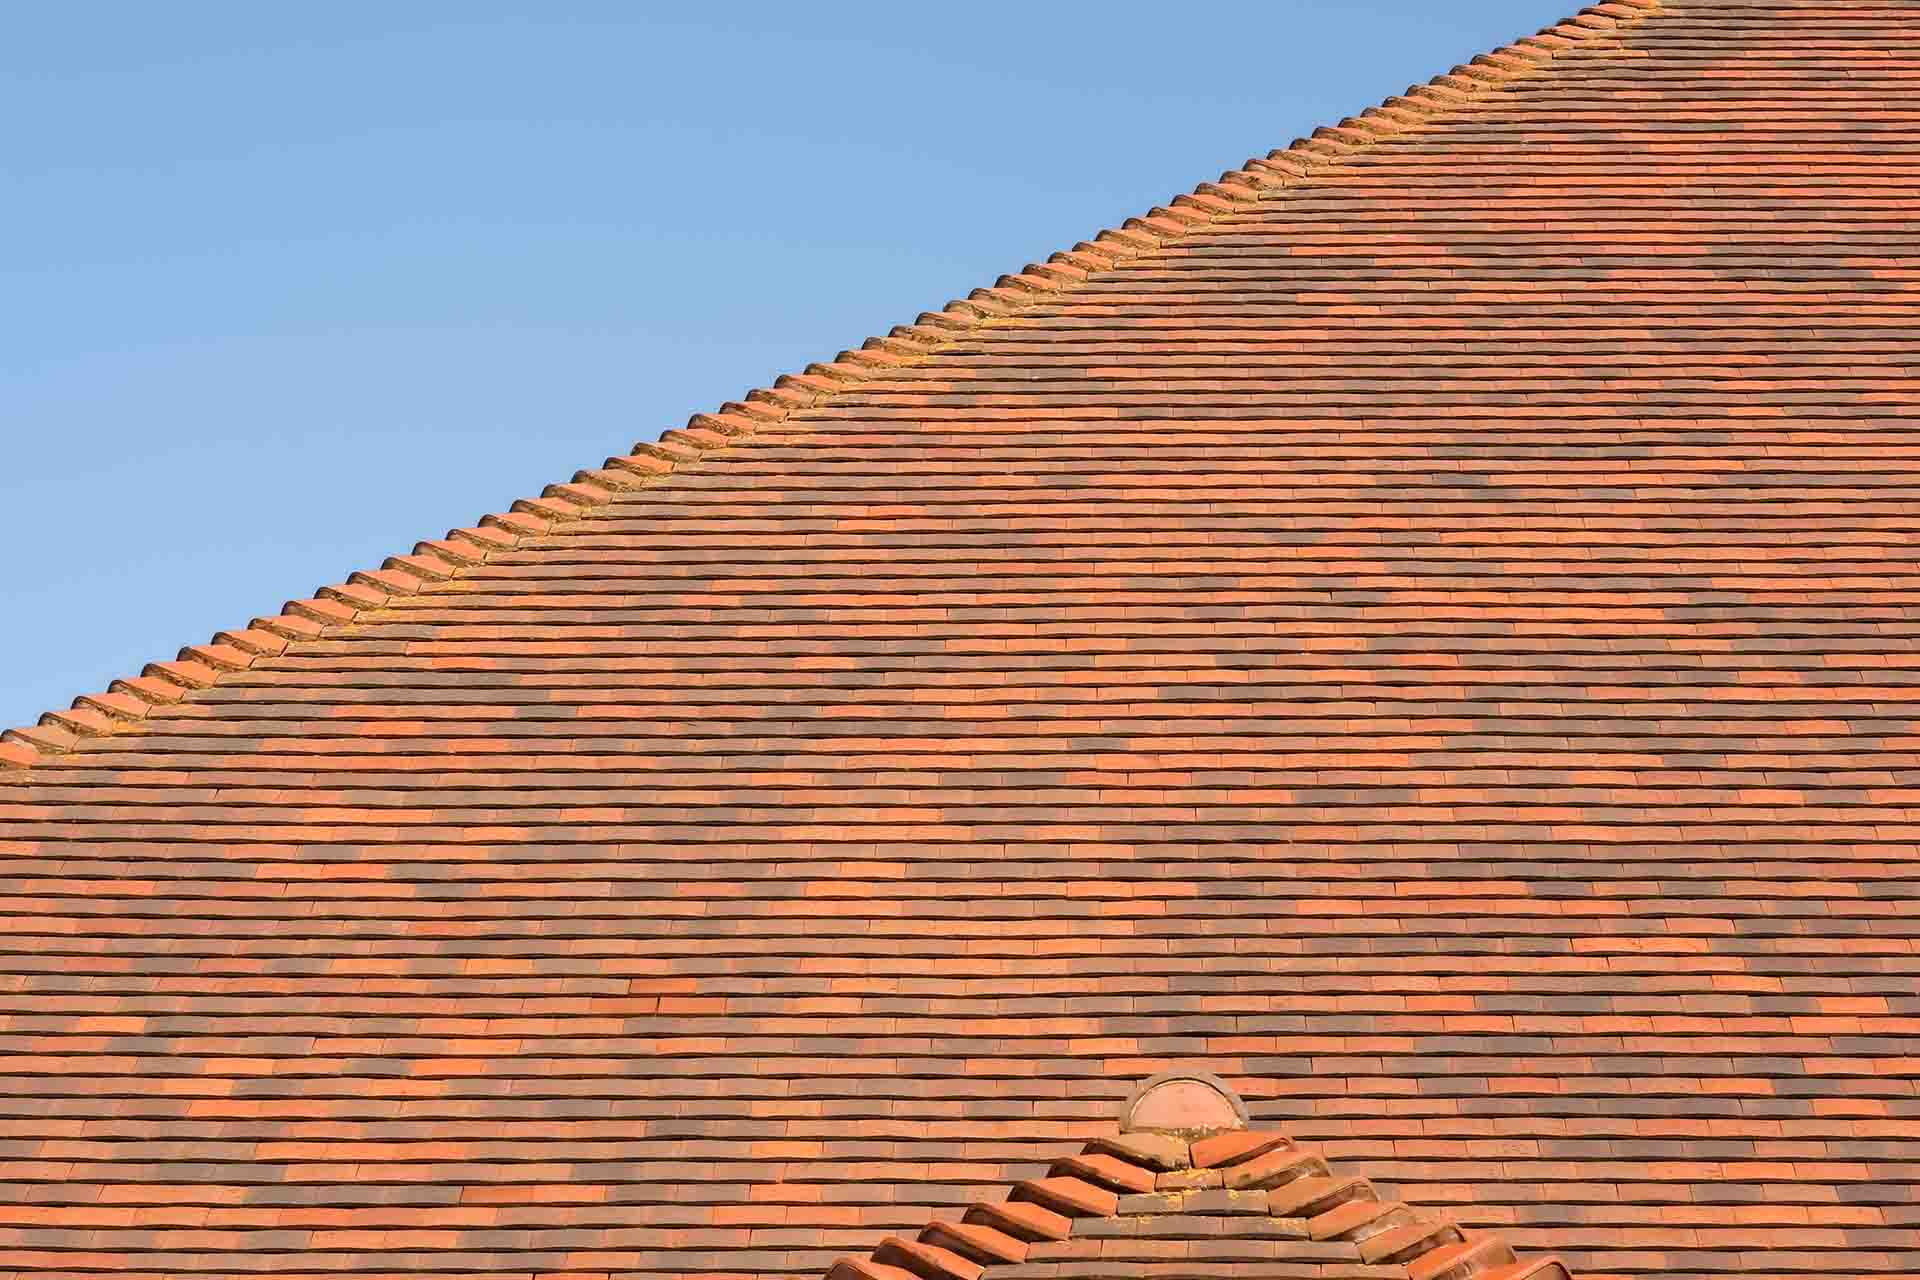 How Do I Know When My Roof Needs to be Replaced?